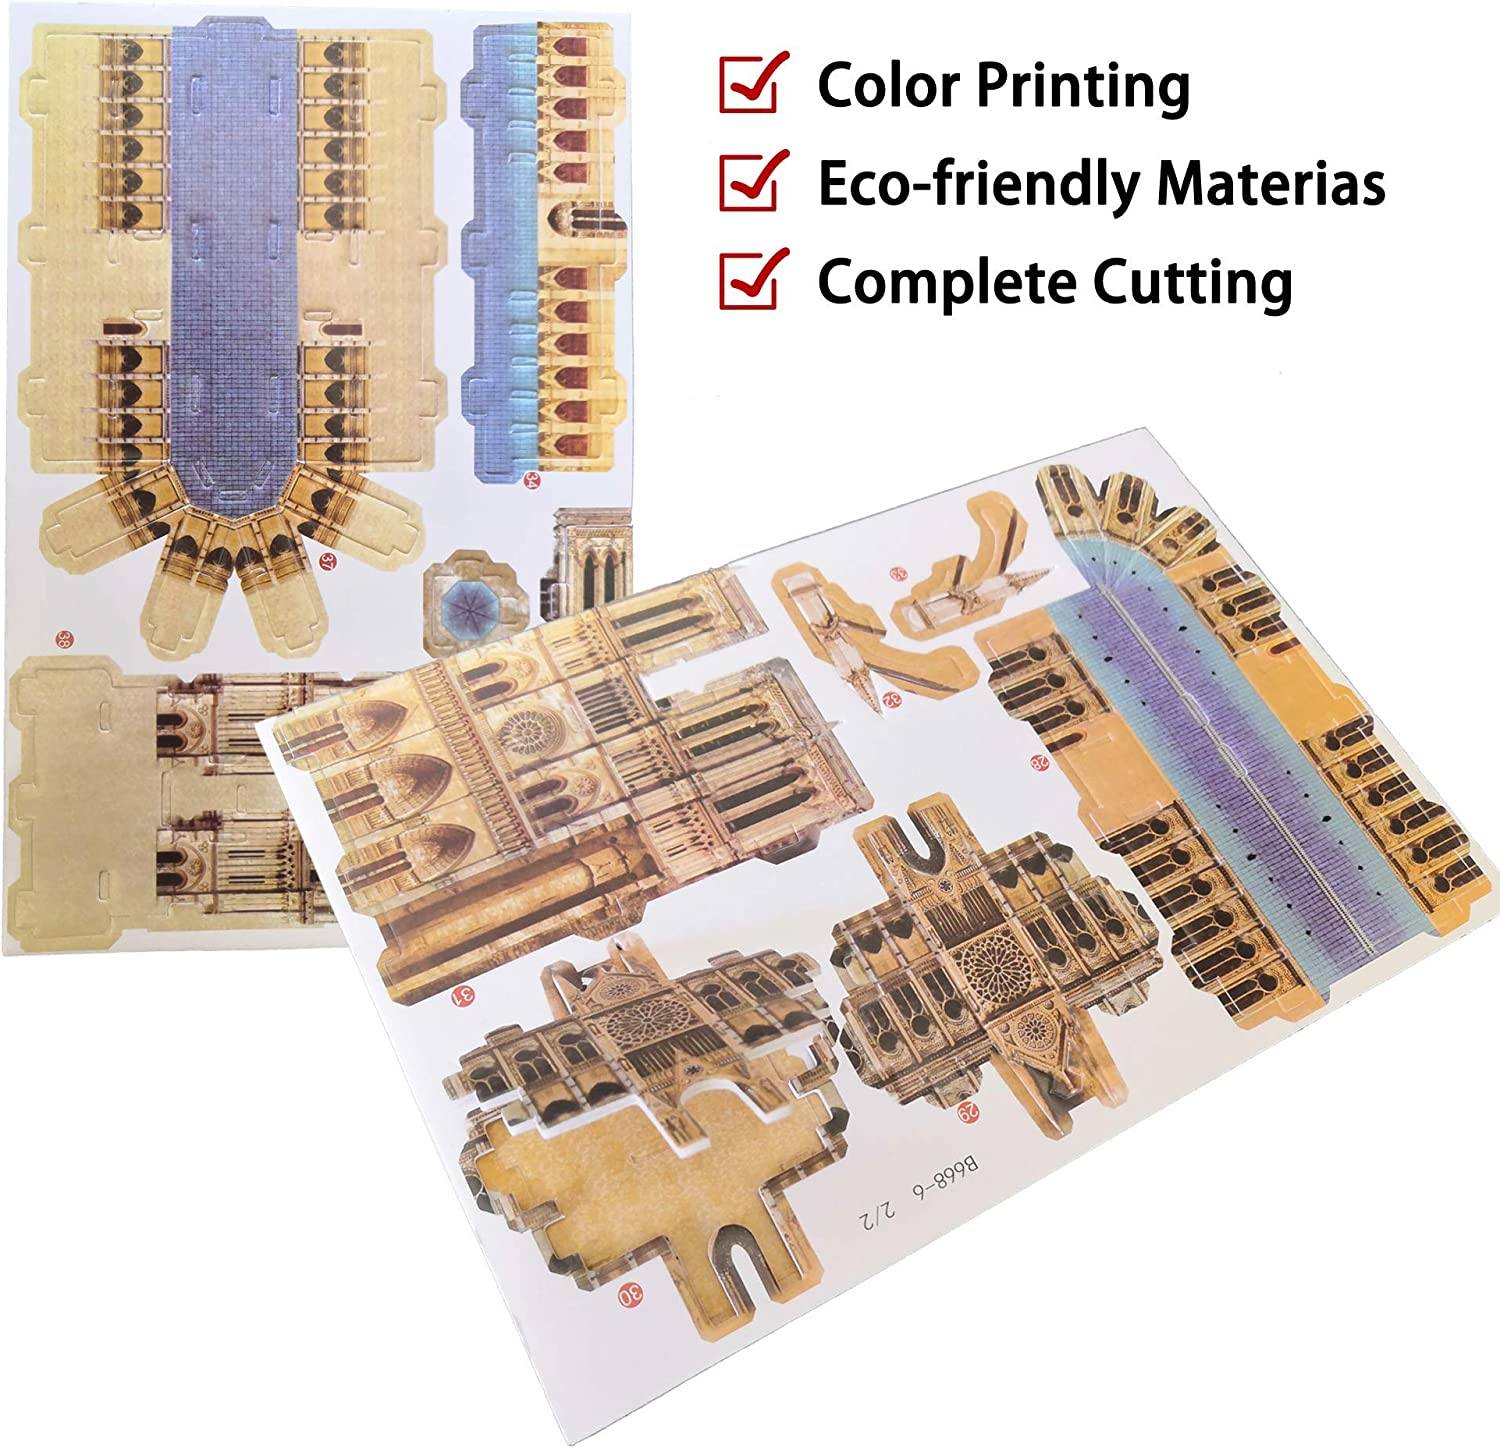 City Architecture Building Model Kit with Booklet DuoDuozw Puzzle 3D Jigsaw 24 Pieces The Empire State Building